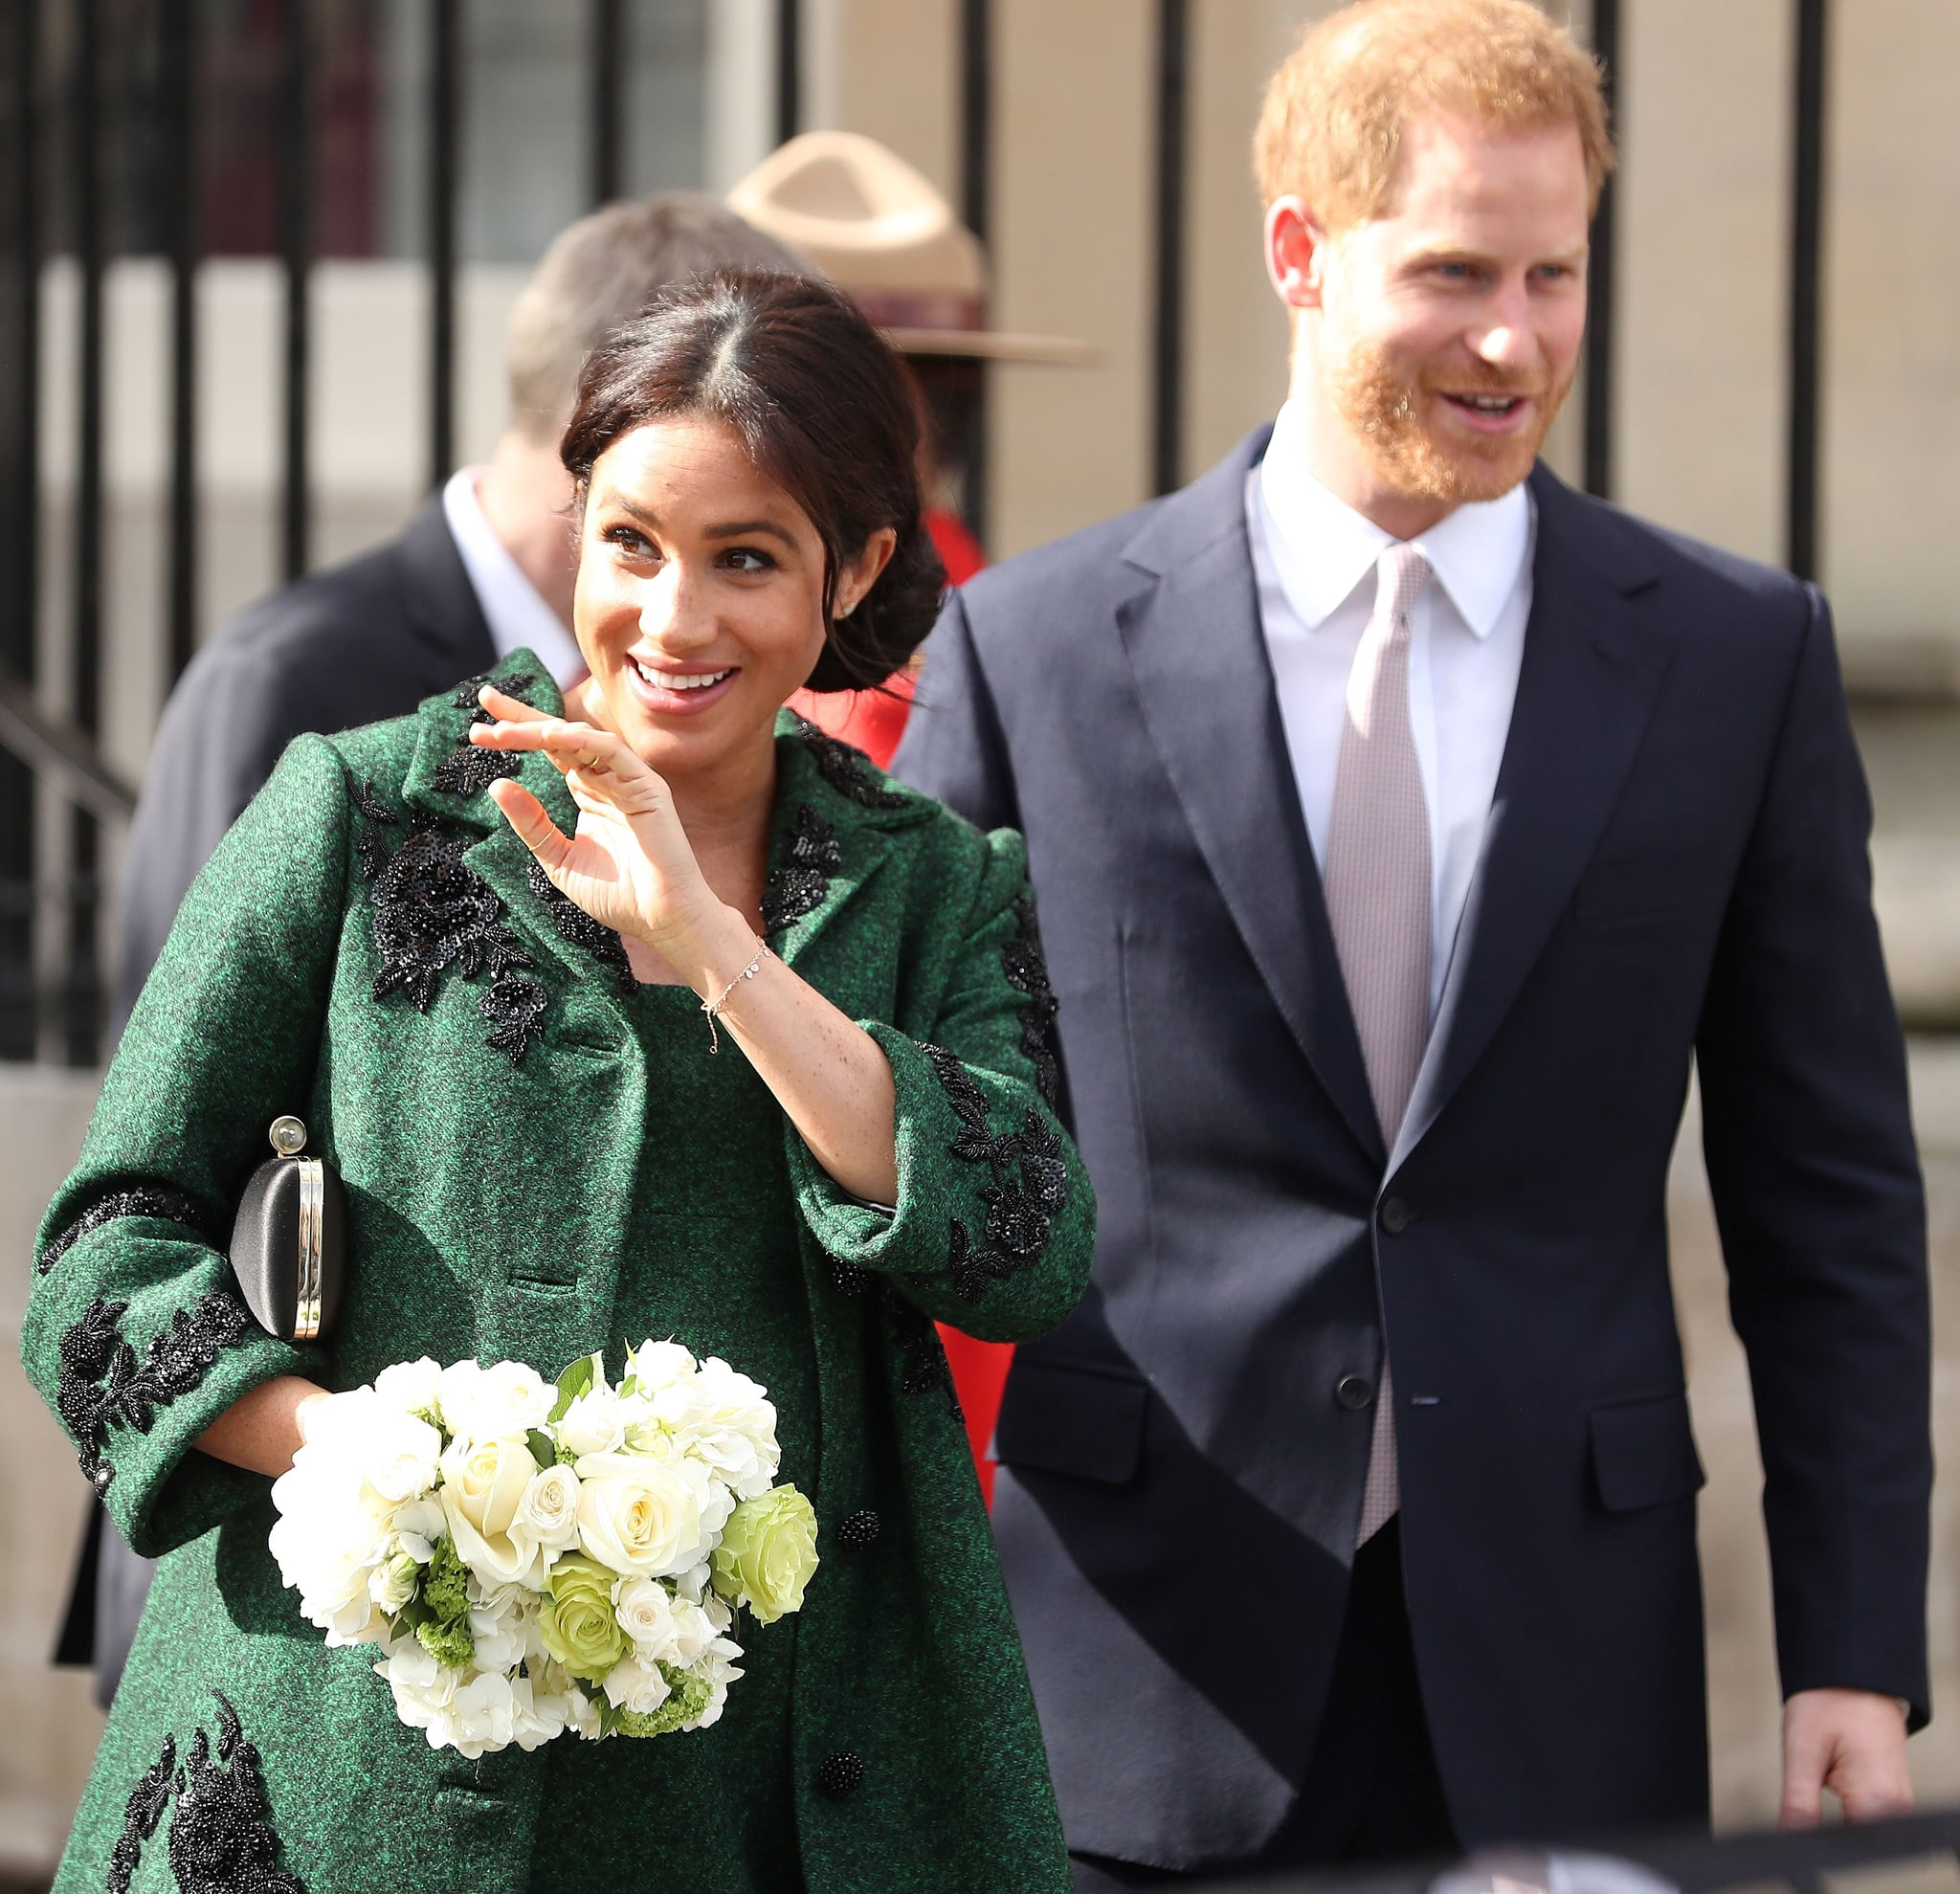 Britain's Prince Harry, Duke of Sussex (R) and Meghan, Duchess of Sussex react as they leave from Canada House, the offices of the High Commission of Canada in the United Kingdom, after attending an event to mark Commonwealth Day, in central London, on March 11, 2019. - Britain's Queen Elizabeth II has been the Head of the Commonwealth throughout her reign. Organised by the Royal Commonwealth Society, the Service is the largest annual inter-faith gathering in the United Kingdom. (Photo by Daniel LEAL-OLIVAS / AFP)        (Photo credit should read DANIEL LEAL-OLIVAS/AFP/Getty Images)